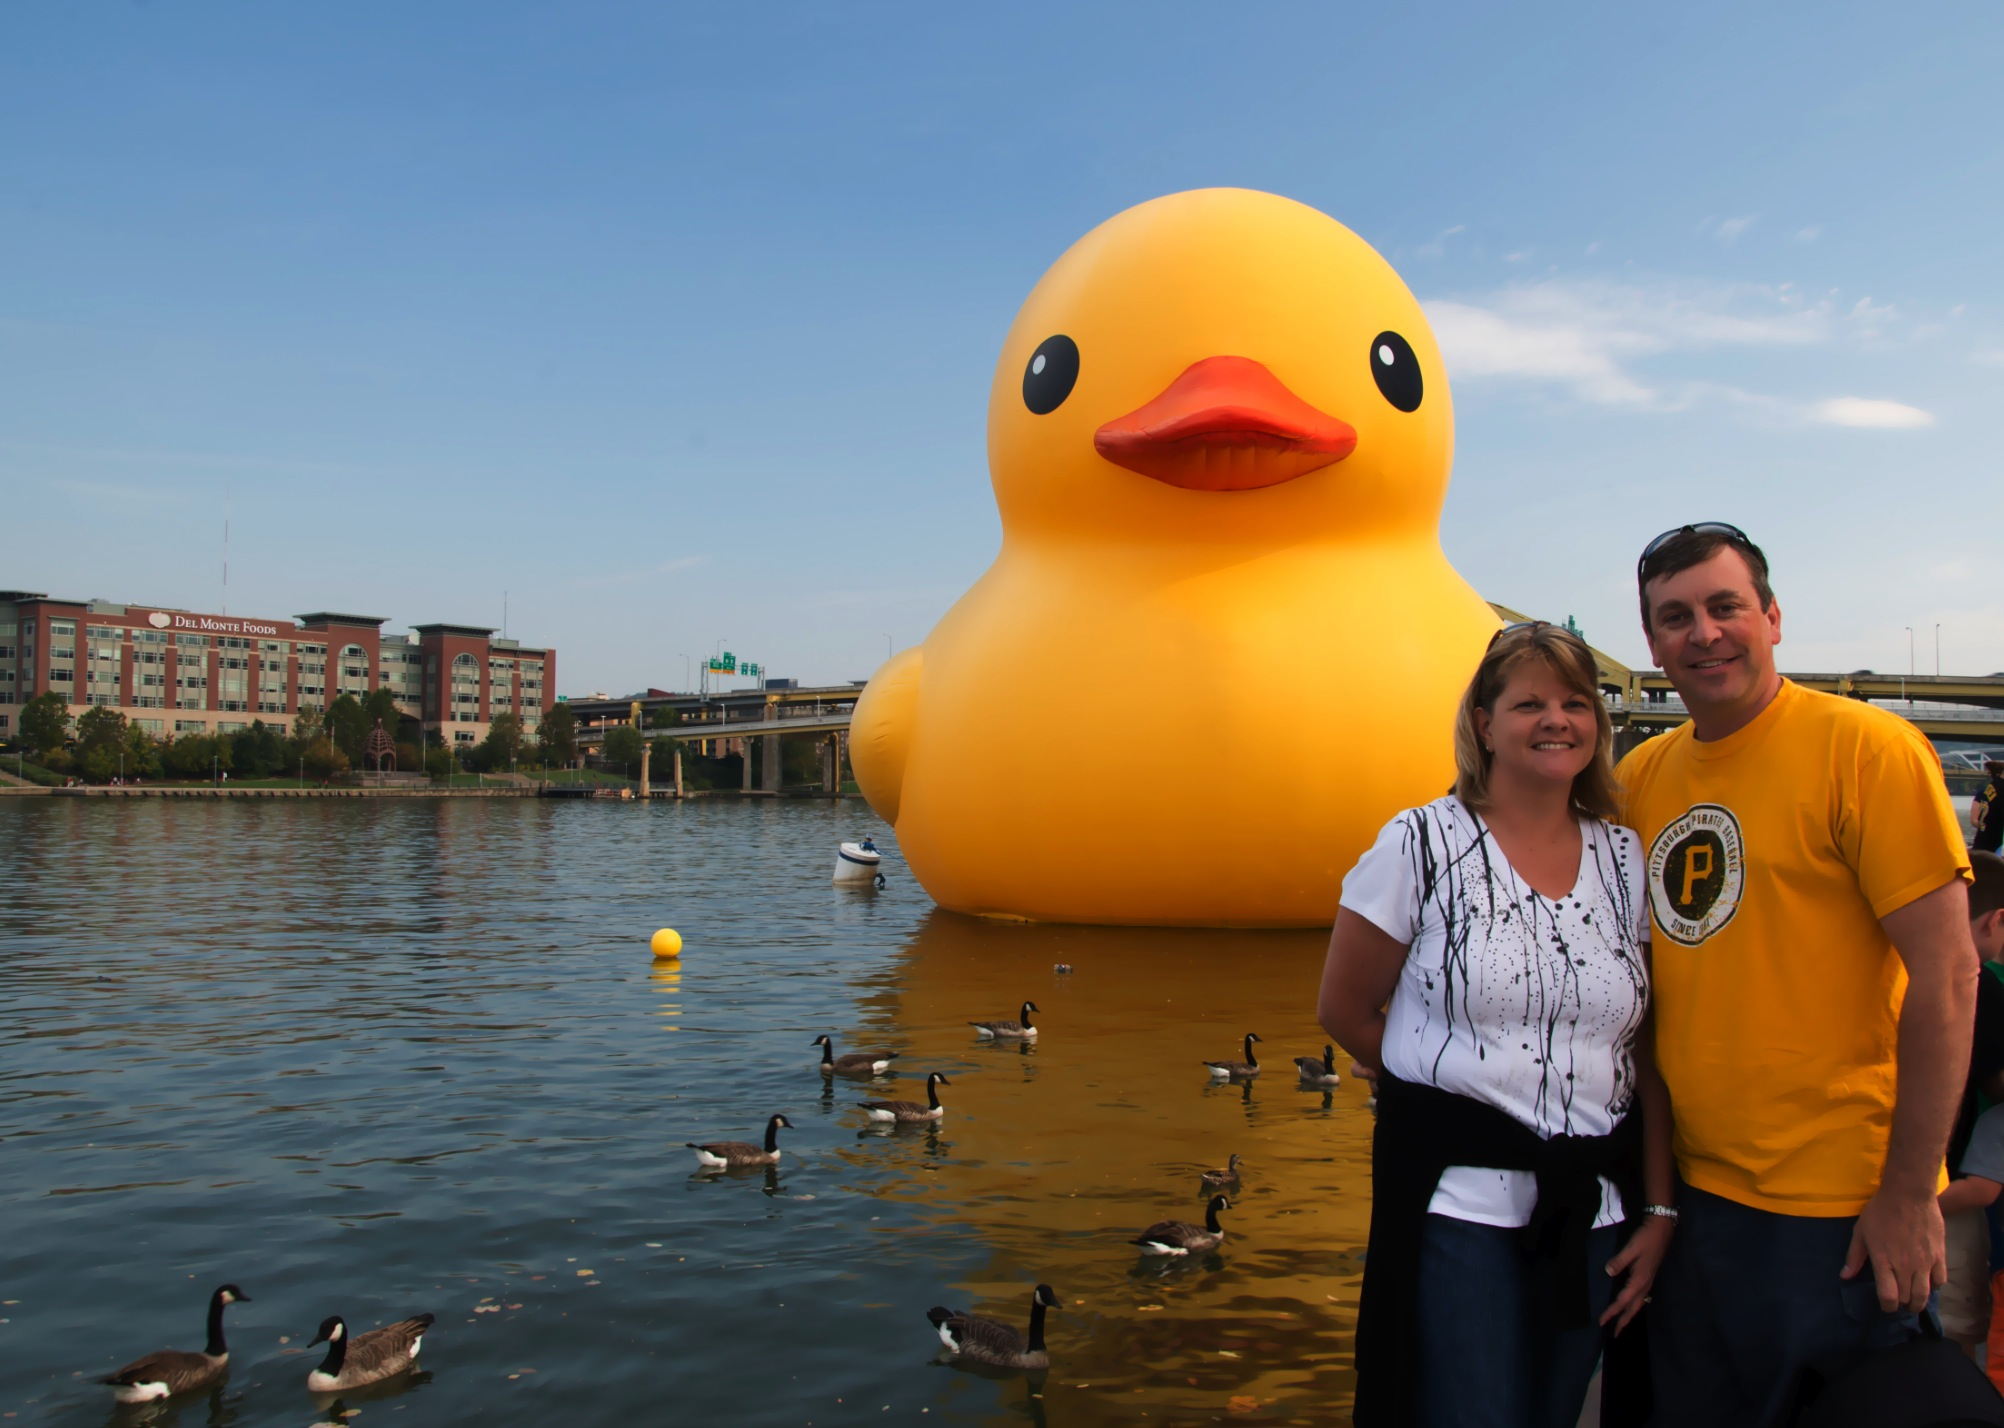 MJ and I with the Giant Rubber Duck.